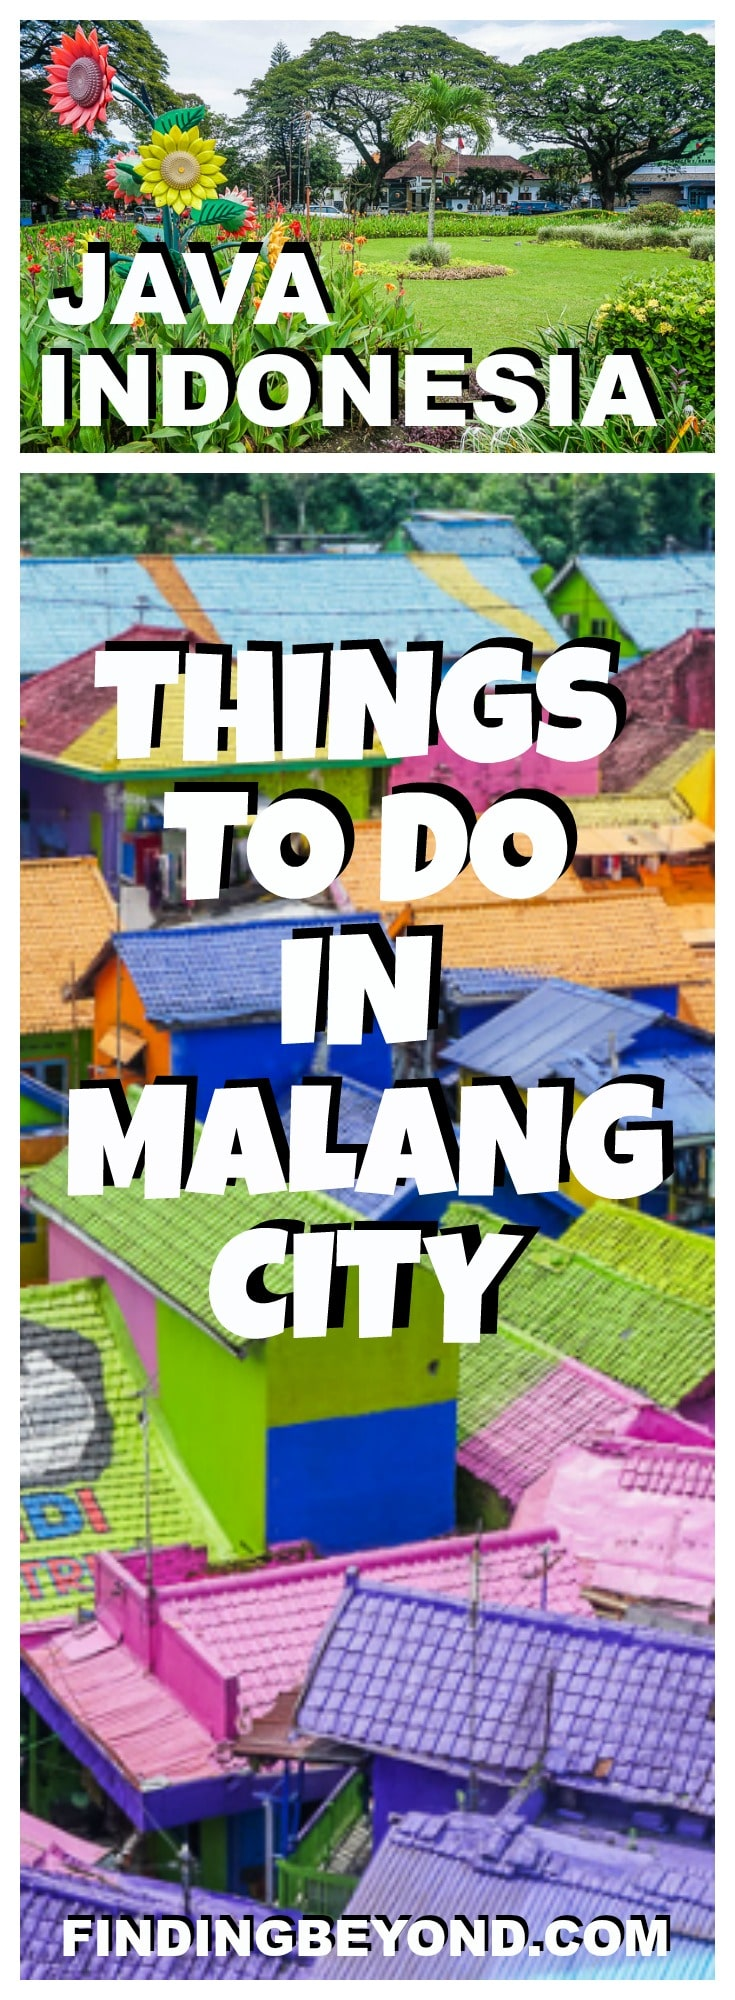 If you find yourself breaking up the epic journey from Yogyakarta to Bromo by stopping in Malang city, check out our things to do in Malang itinerary.